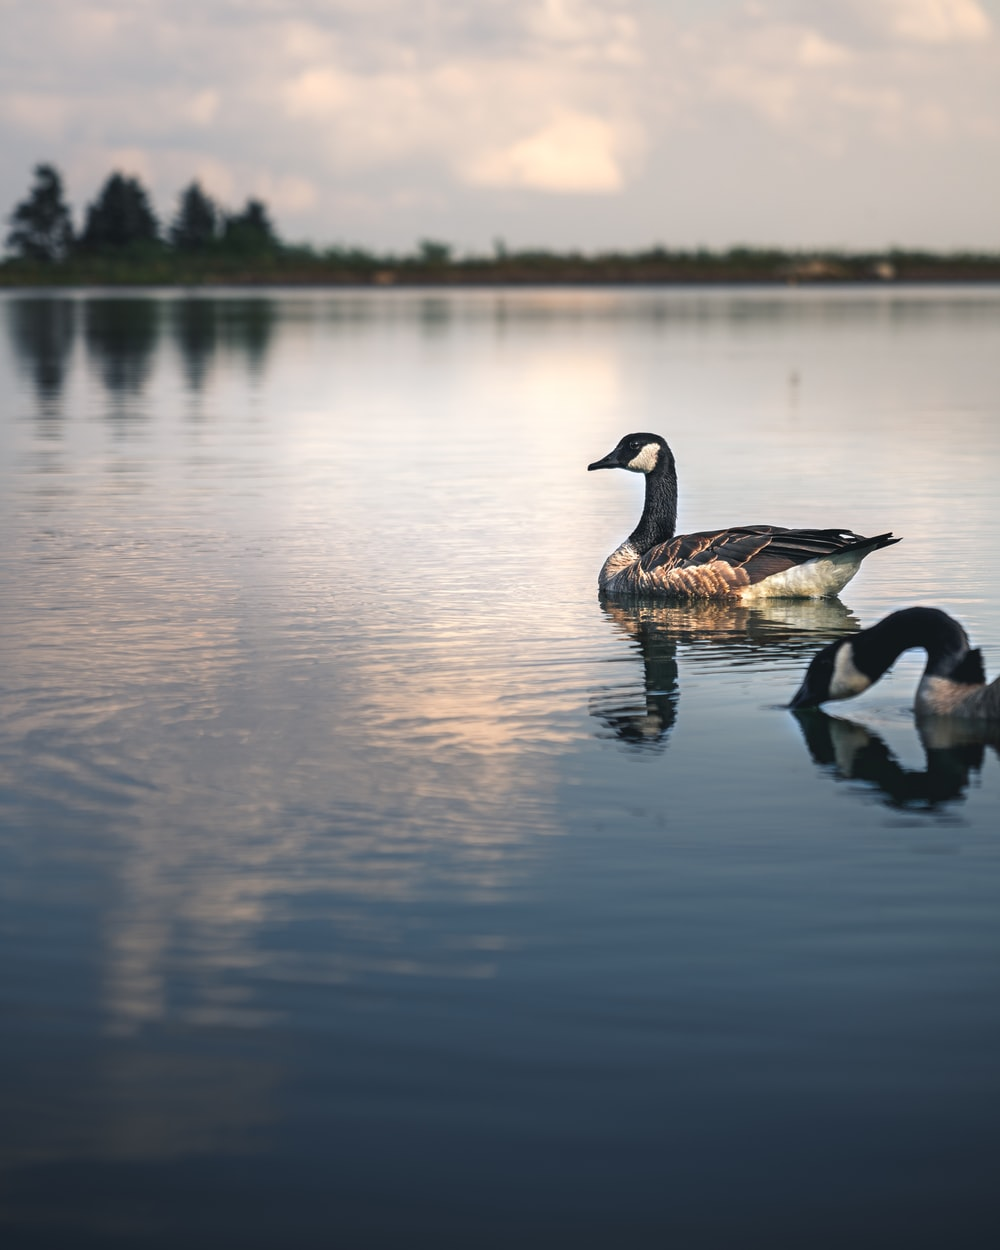 two black and white geese on water during daytime